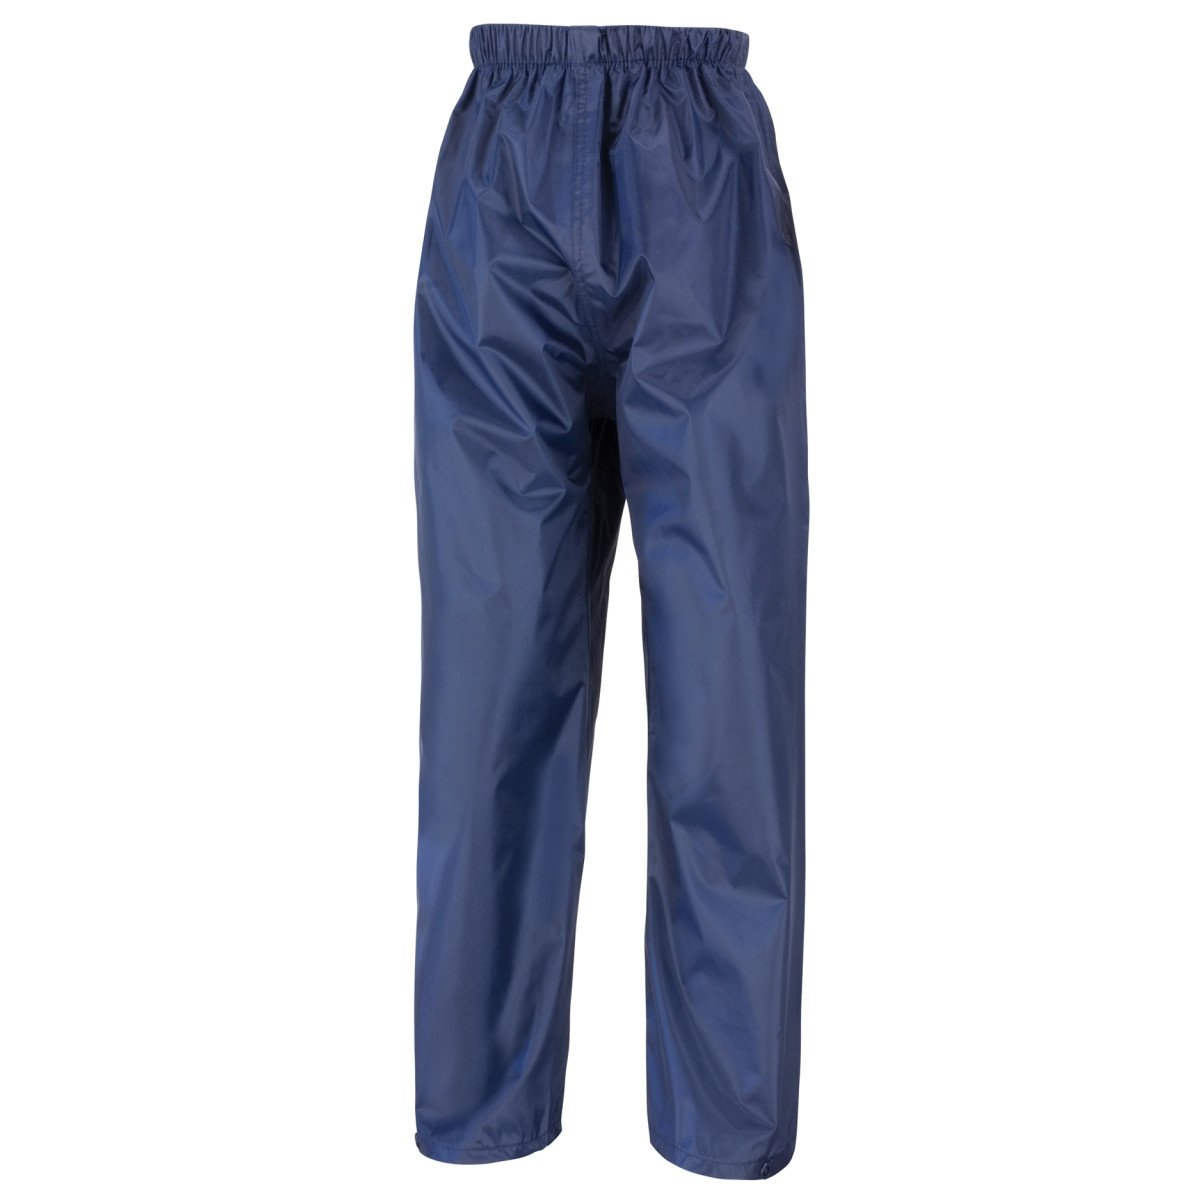 Result Core Kids/Childrens Unisex Stormdri Rain Over Trouser/Pants